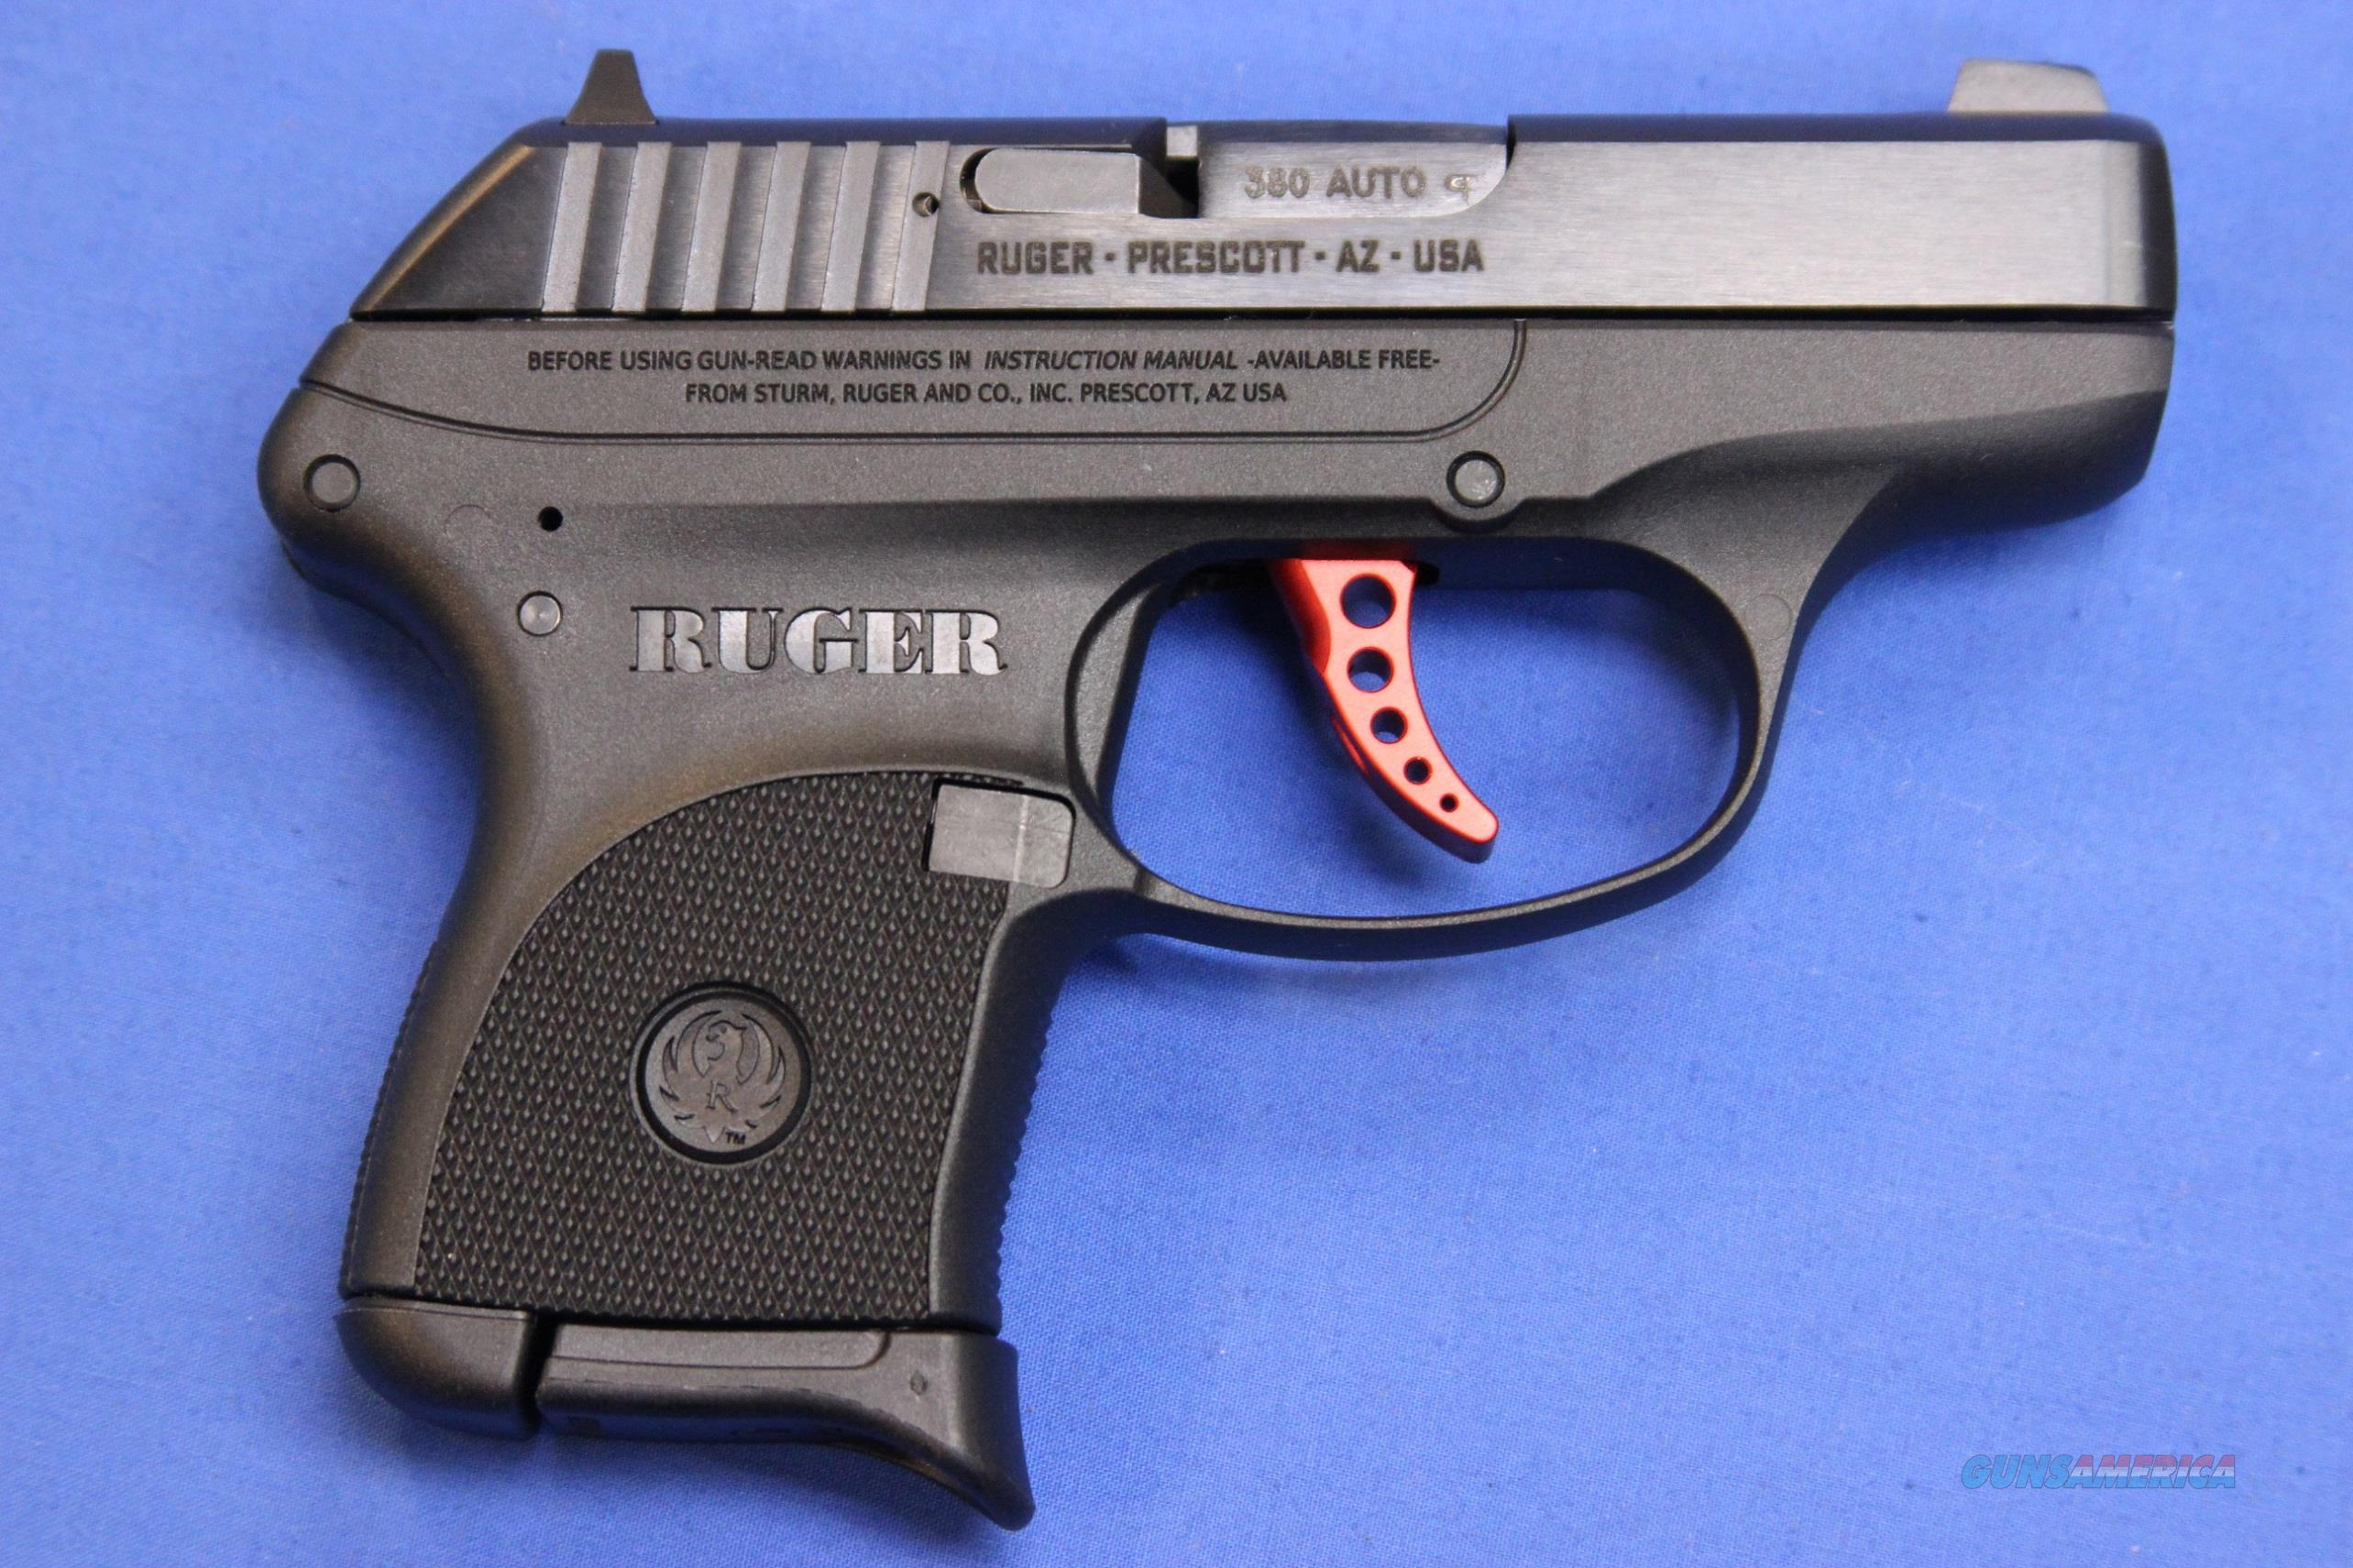 RUGER LCP CUSTOM .380 ACP - NEW!  Guns > Pistols > Ruger Semi-Auto Pistols > LCP